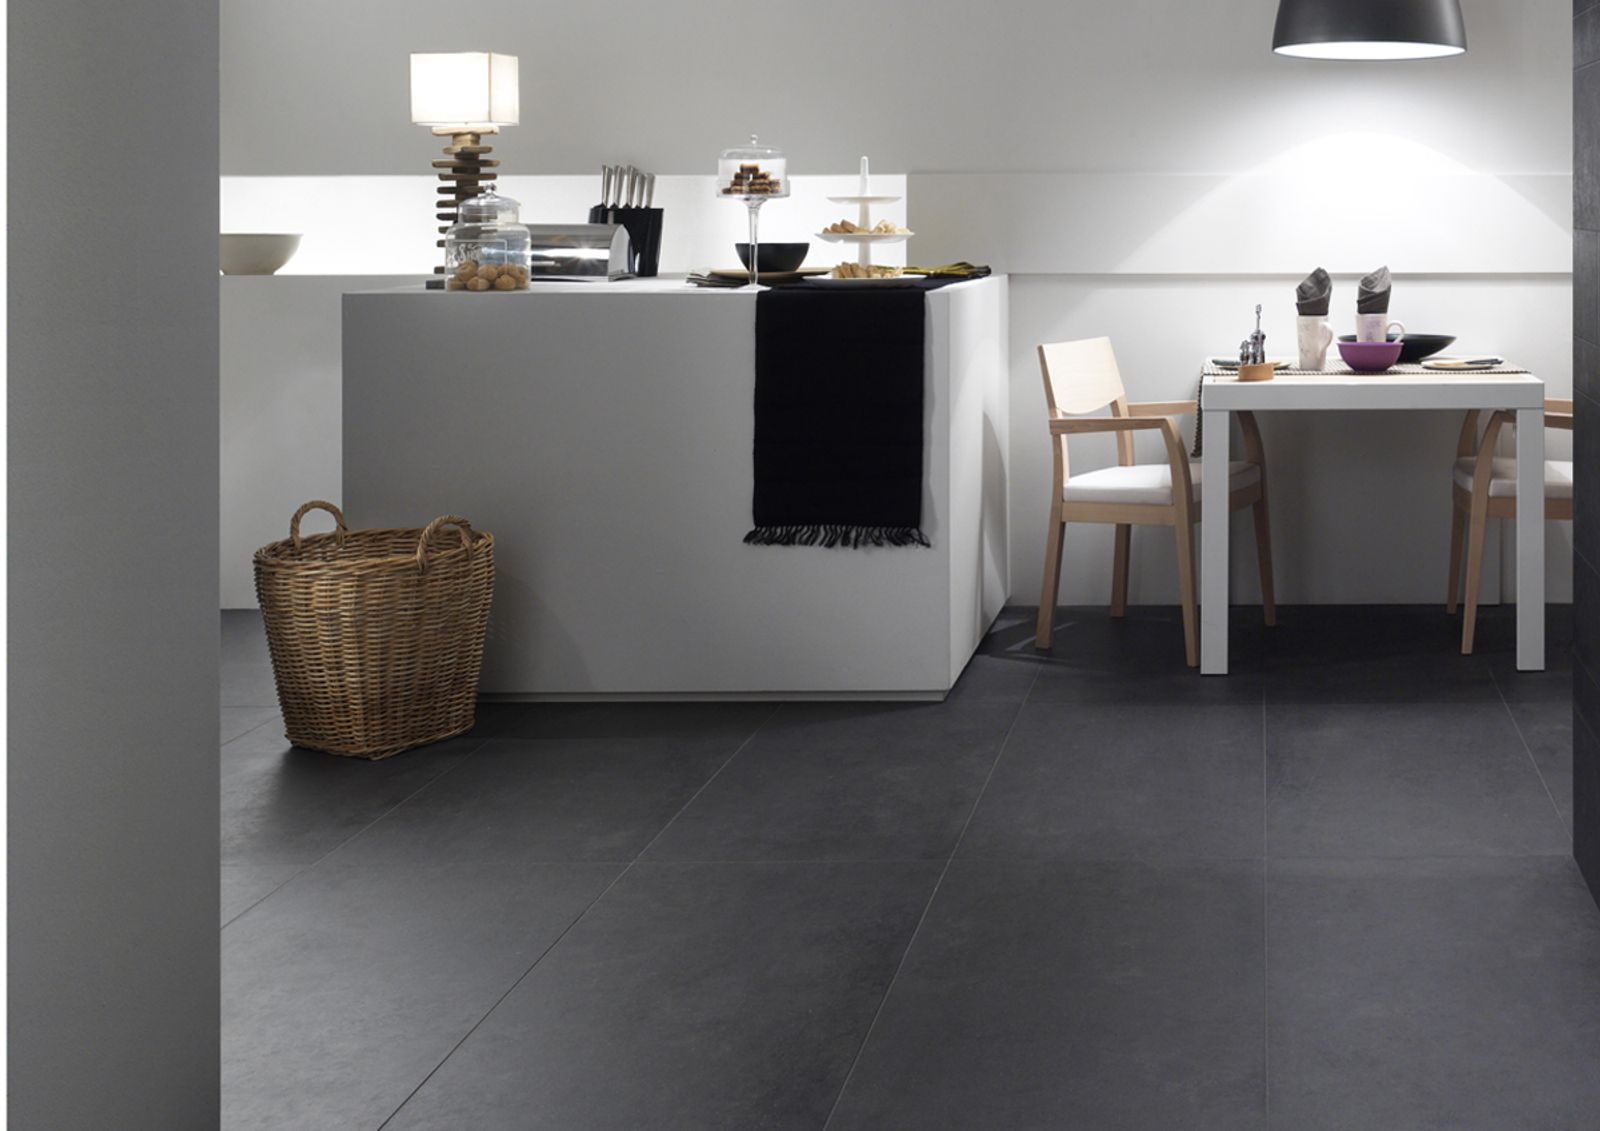 The concrete is turned into a tile with a clear contemporary mood, designed to inspire and surround exterior surfaces, but also ventilated facades and high-traffic public spaces. Its minimalist style features in flooring that is highly modular in different sizes depending on requirements and the desired visual effect. - AM CONCRETE 6 - Imola Ceramica